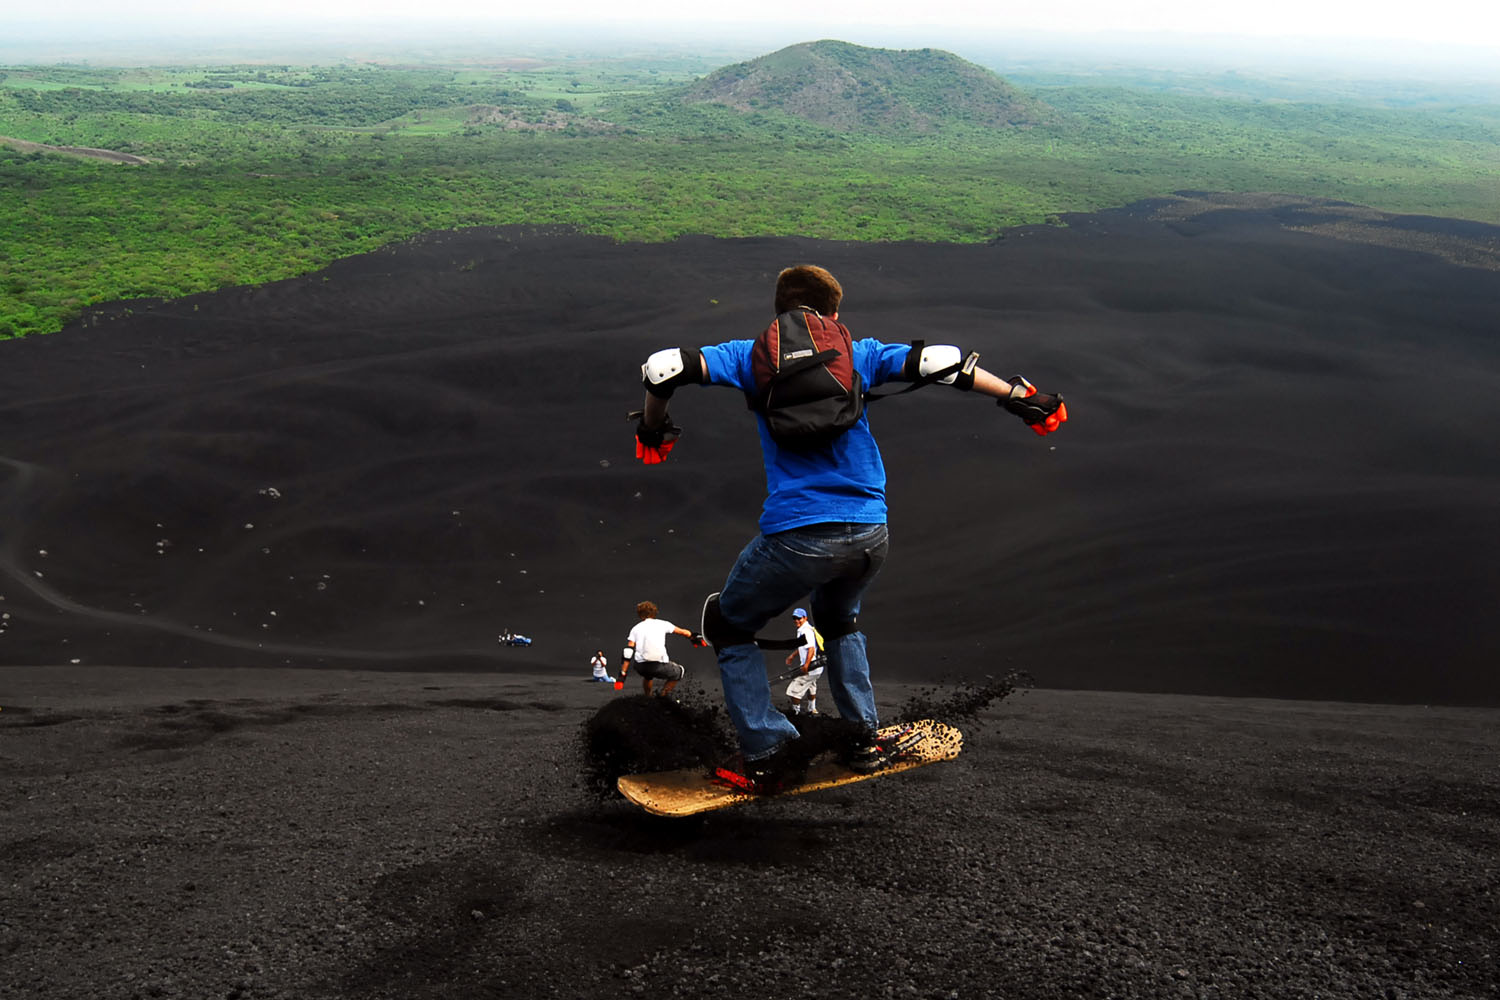 Tourists slide down the Cerro Negro volcano in the outskirts of Leon, Nicaragua.